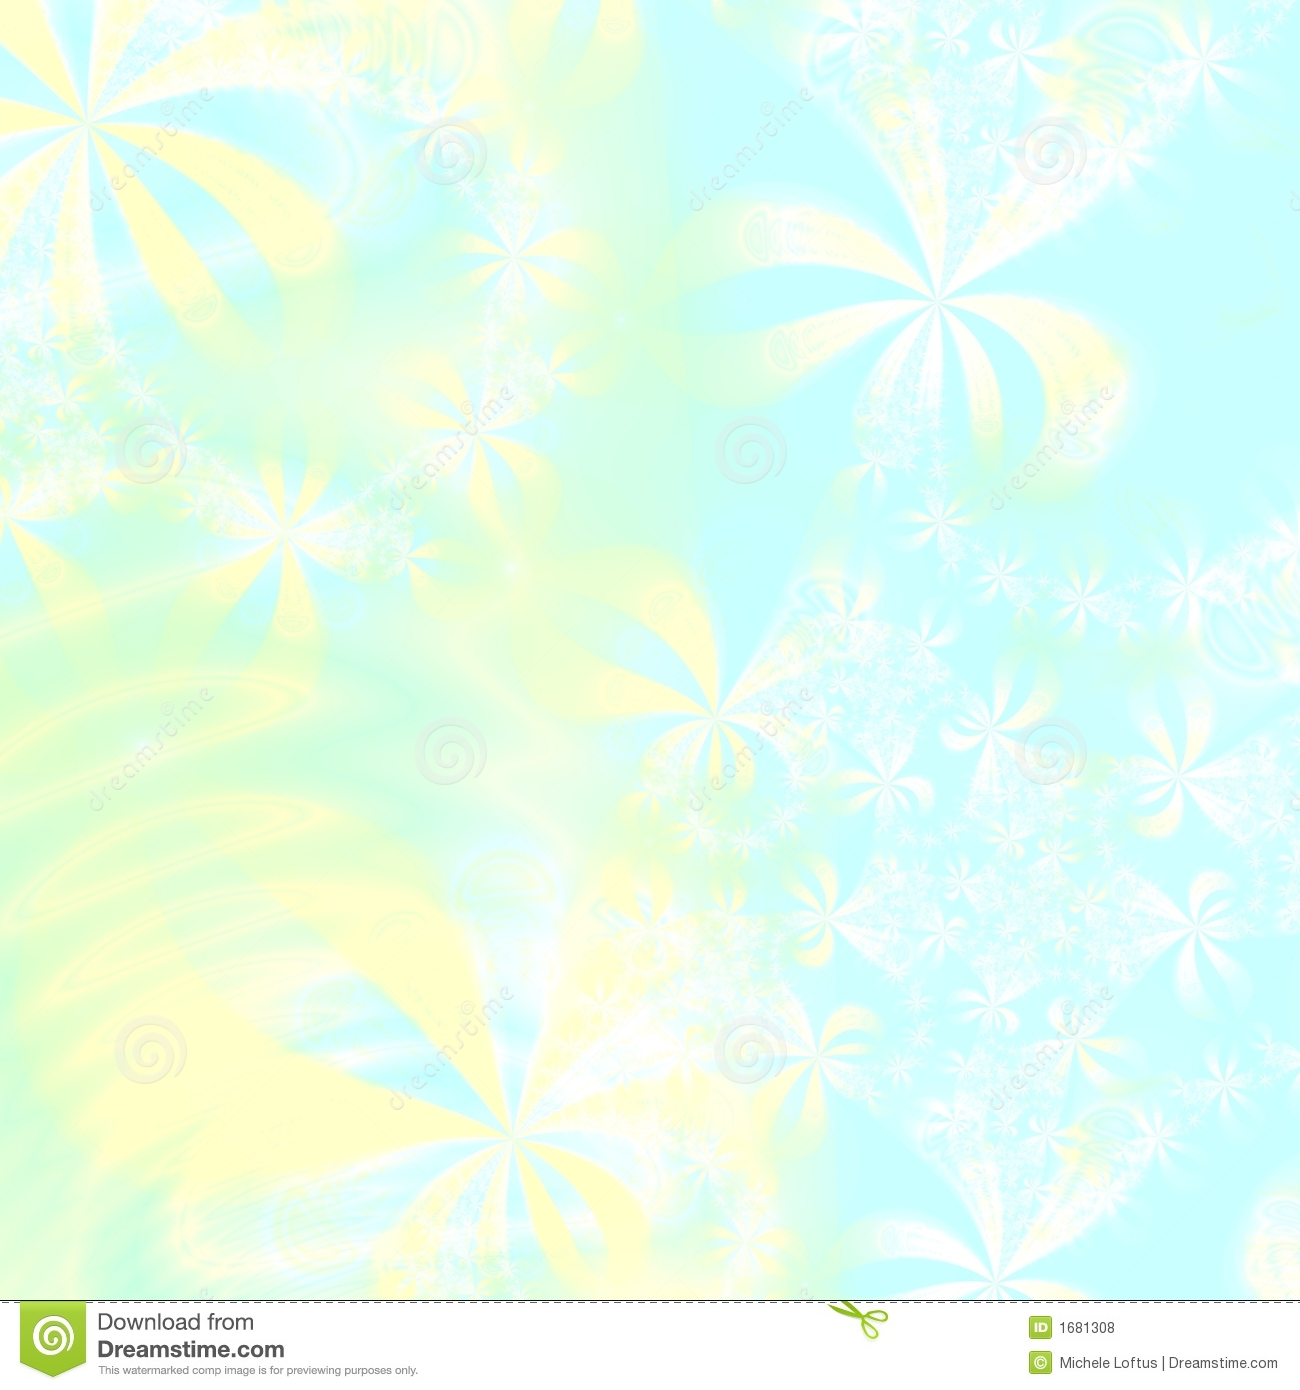 yellow and blue abstract background design template or